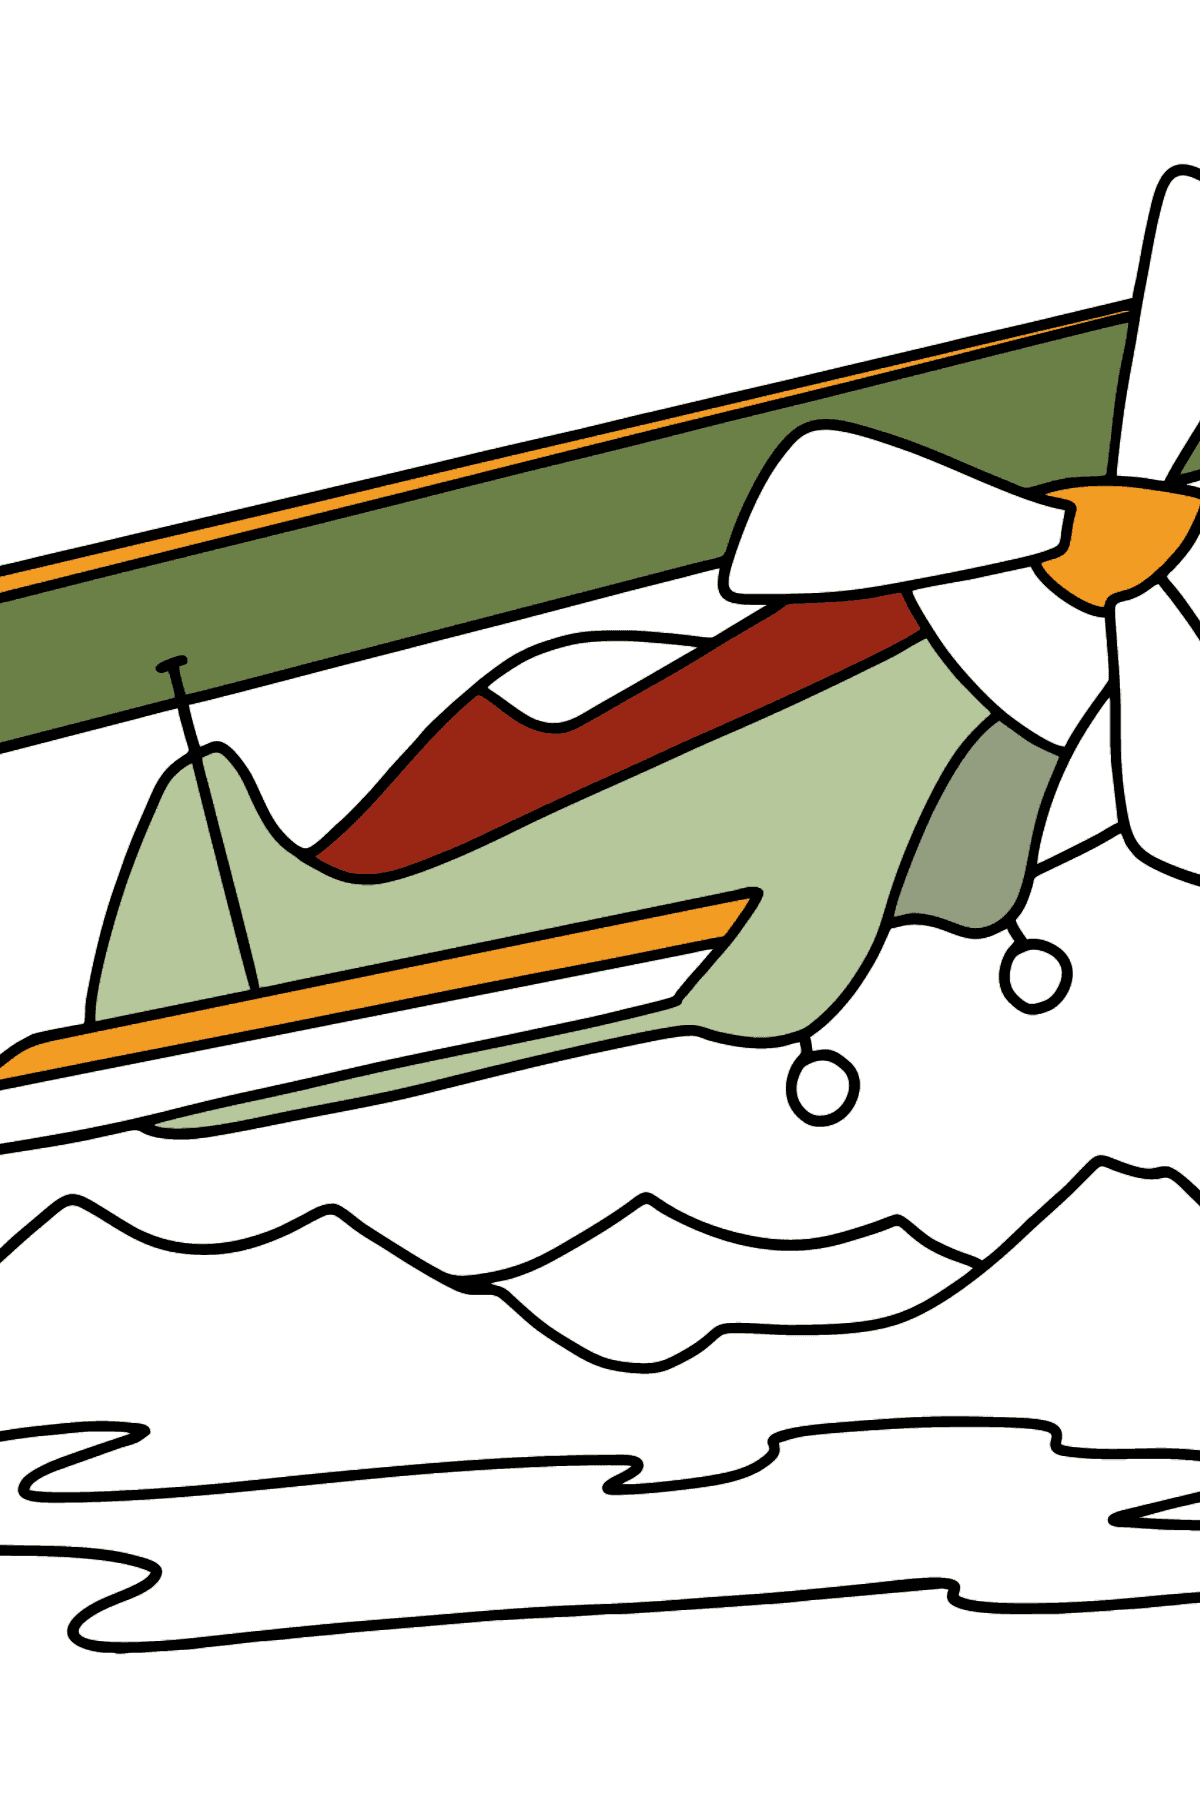 Coloring page - Light Airplane flies Over Mountains - Coloring Pages for Kids